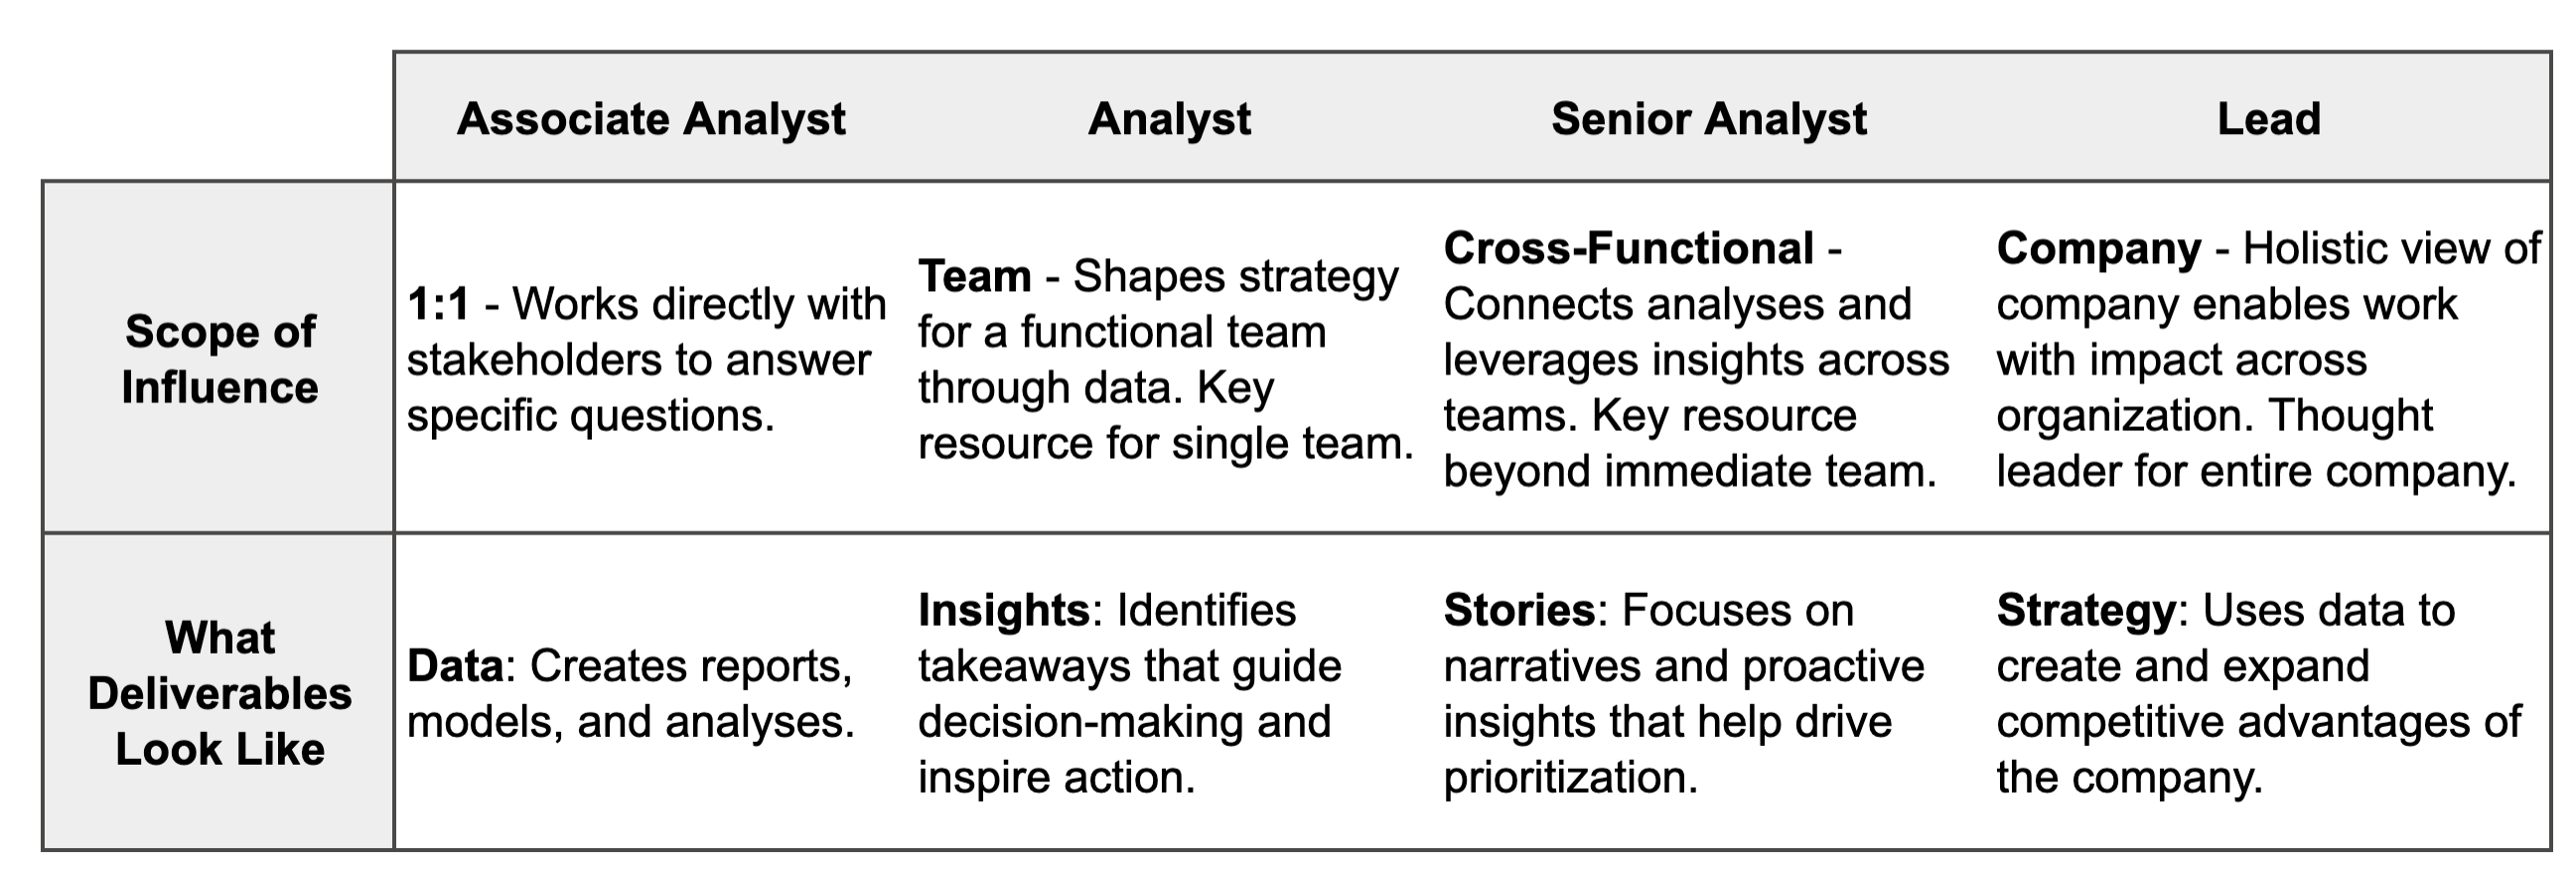 Chart that shows scope of influence plus types of deliverables for each level, from associate analyst to lead.